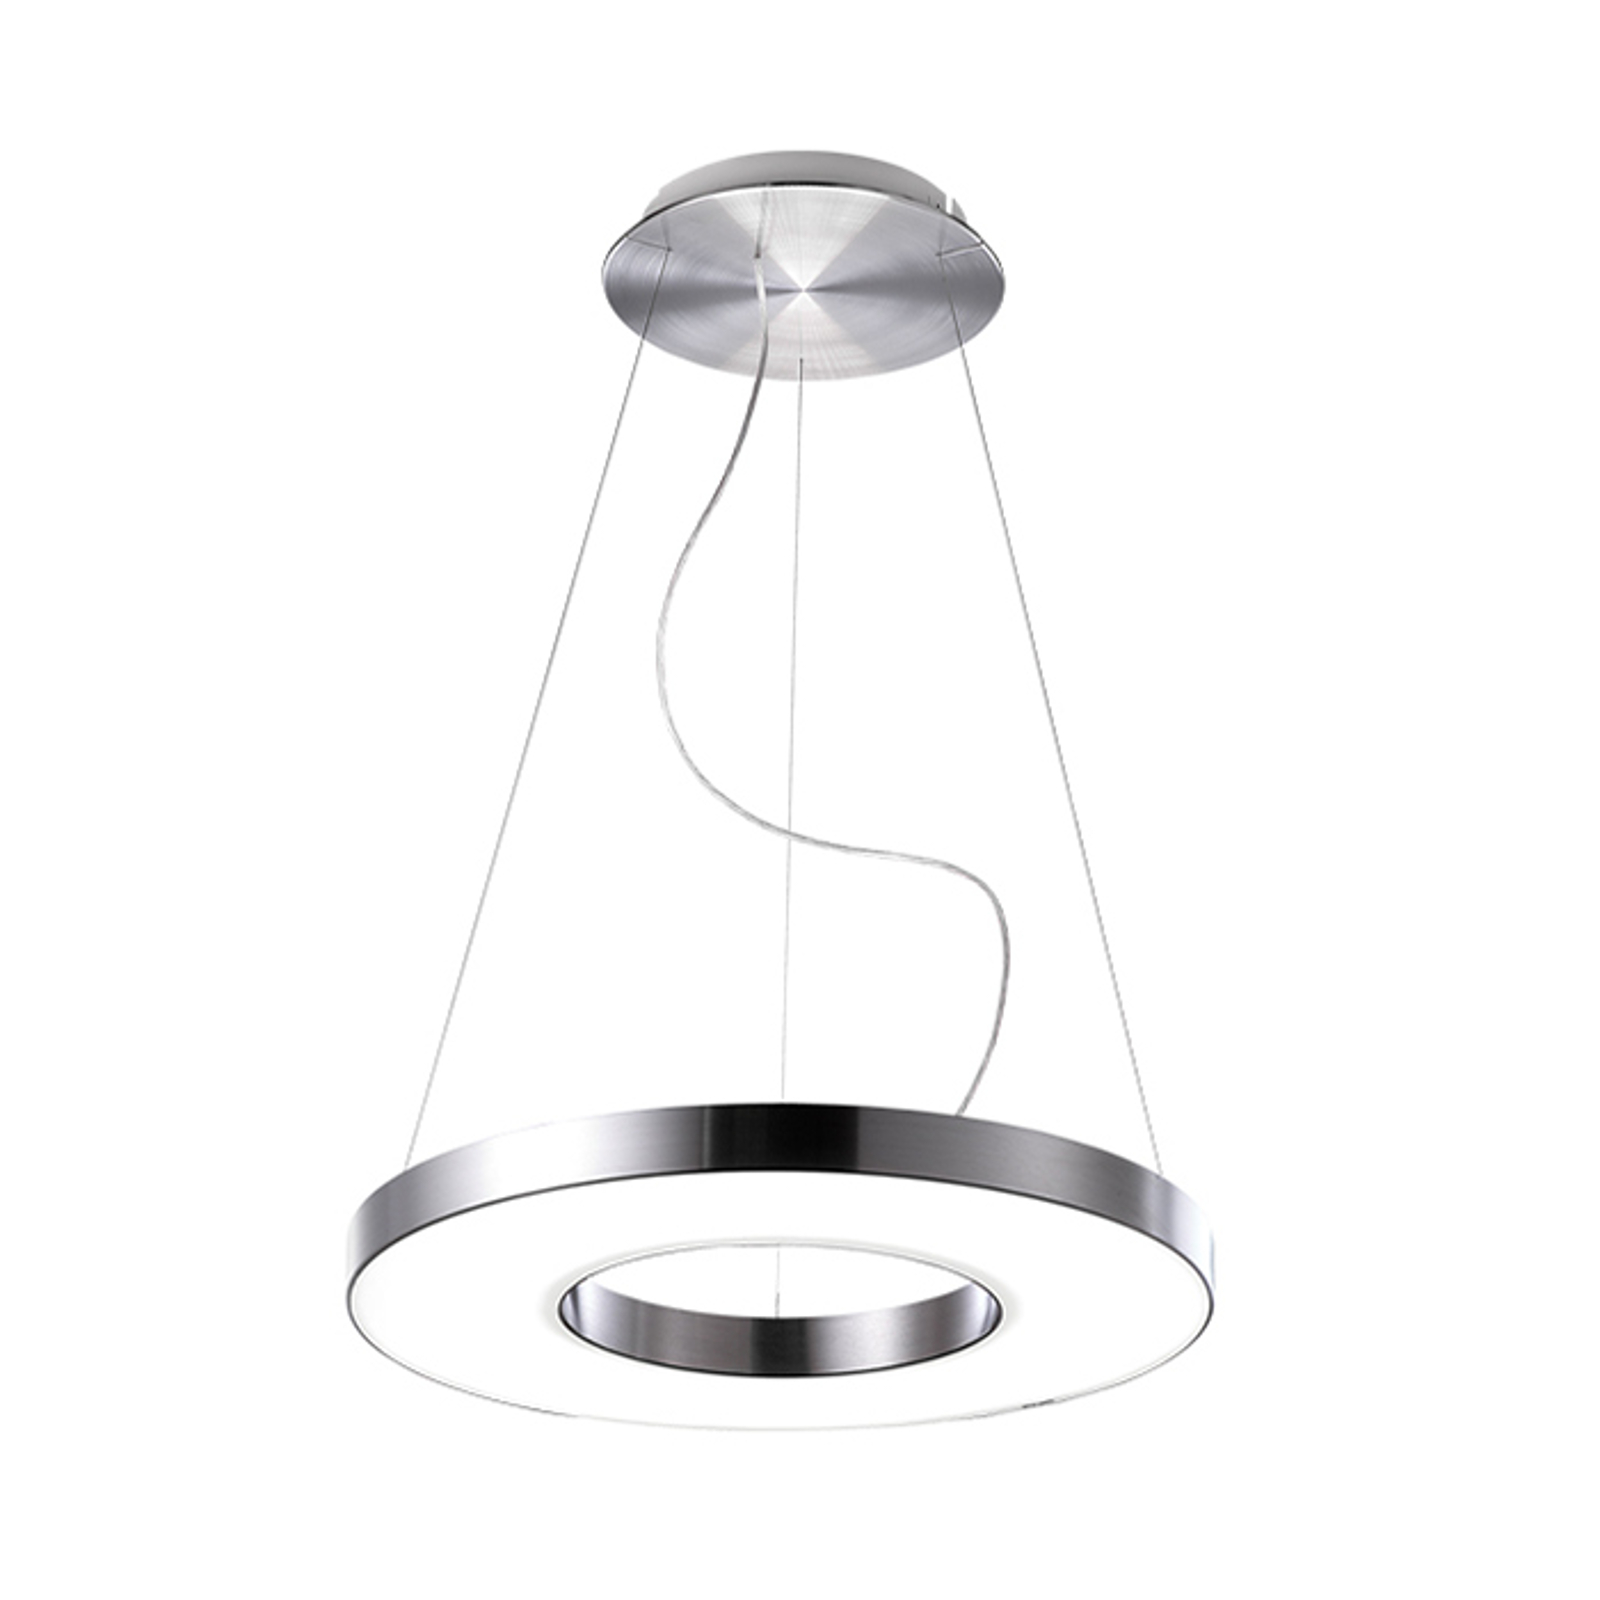 Suspension LED Vivaa anneau C 600 DALI 3 000 K